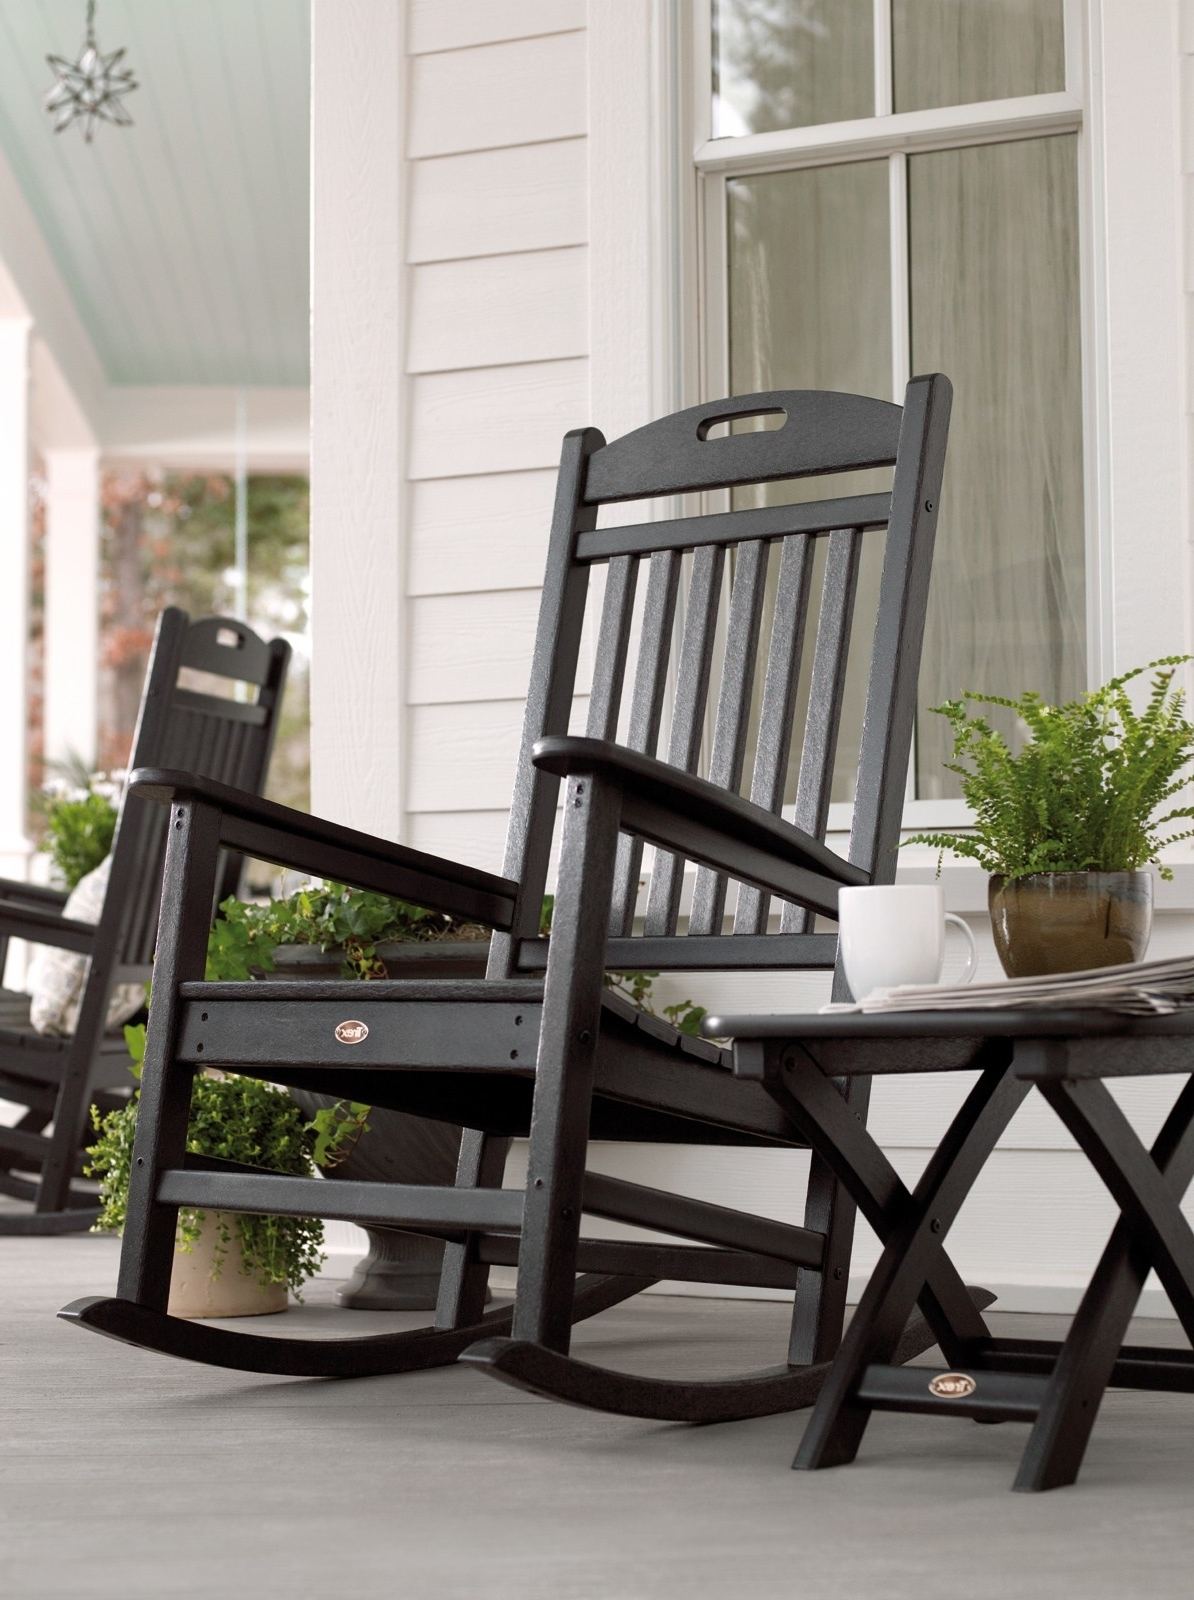 Patio Rocking Chairs With Ottoman For Current Patio & Garden : Outdoor Rocking Chair Lowes Outdoor Rocking Chair (View 9 of 15)